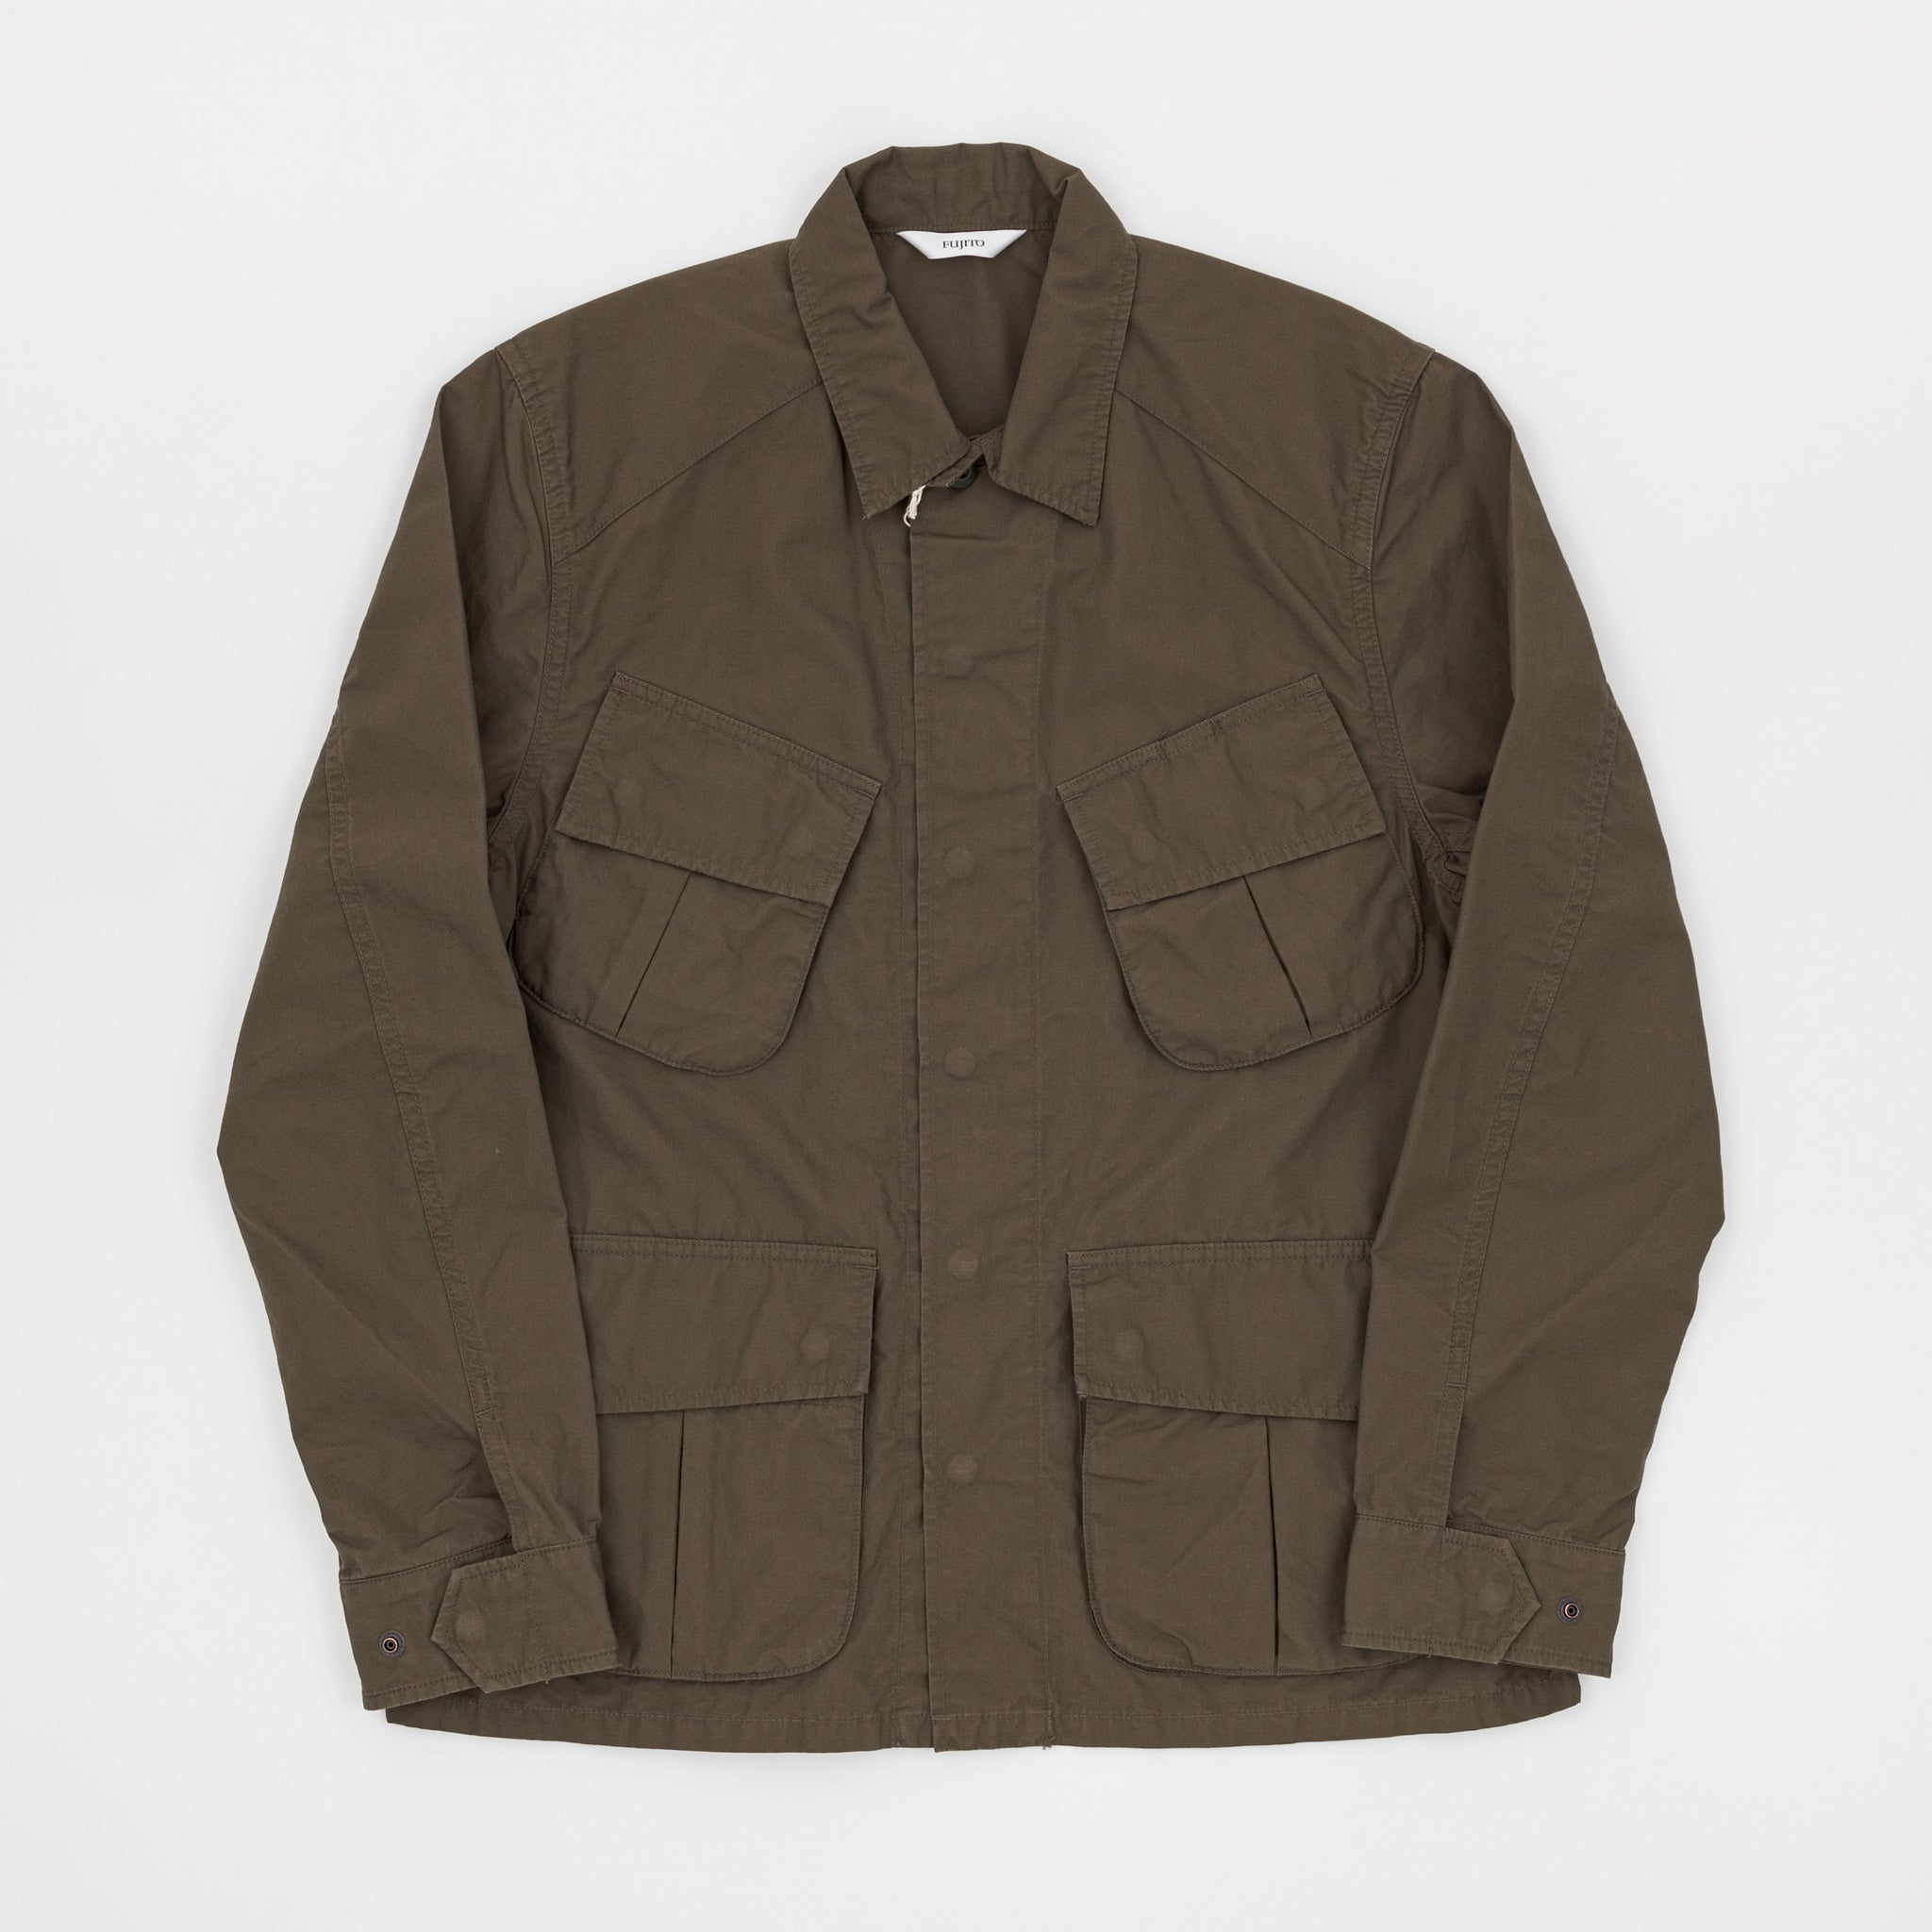 Jungle Fatigue Jacket